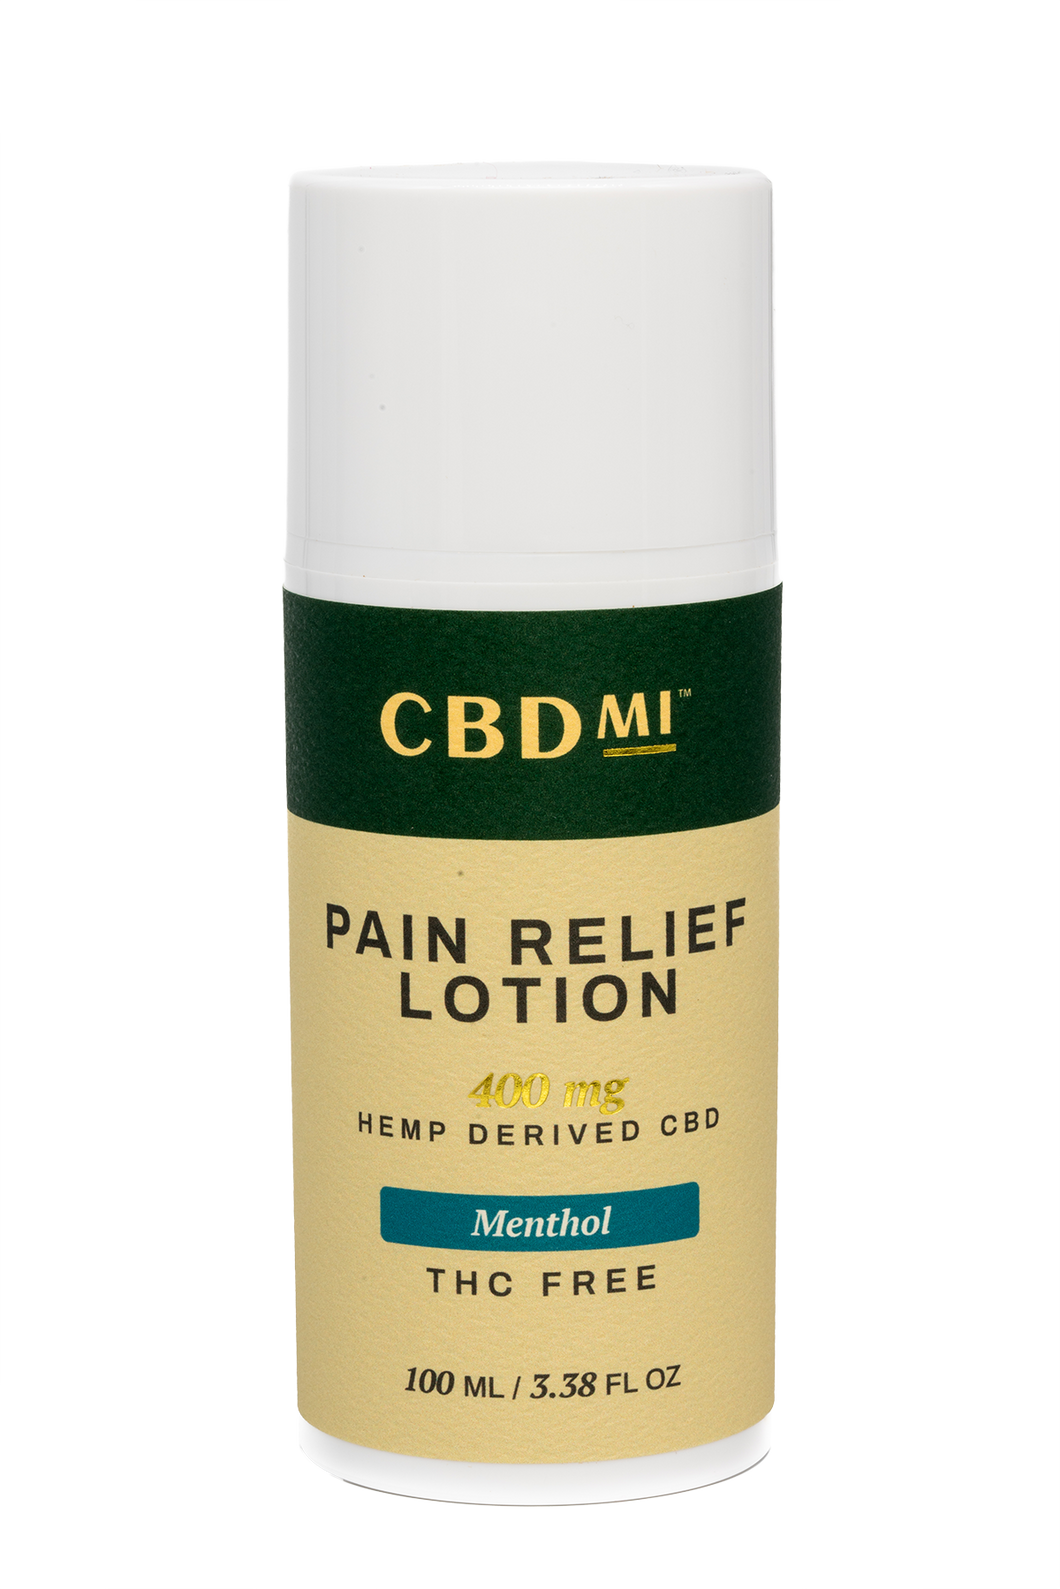 Topical Pain Relief Lotion - Menthol - 400mg